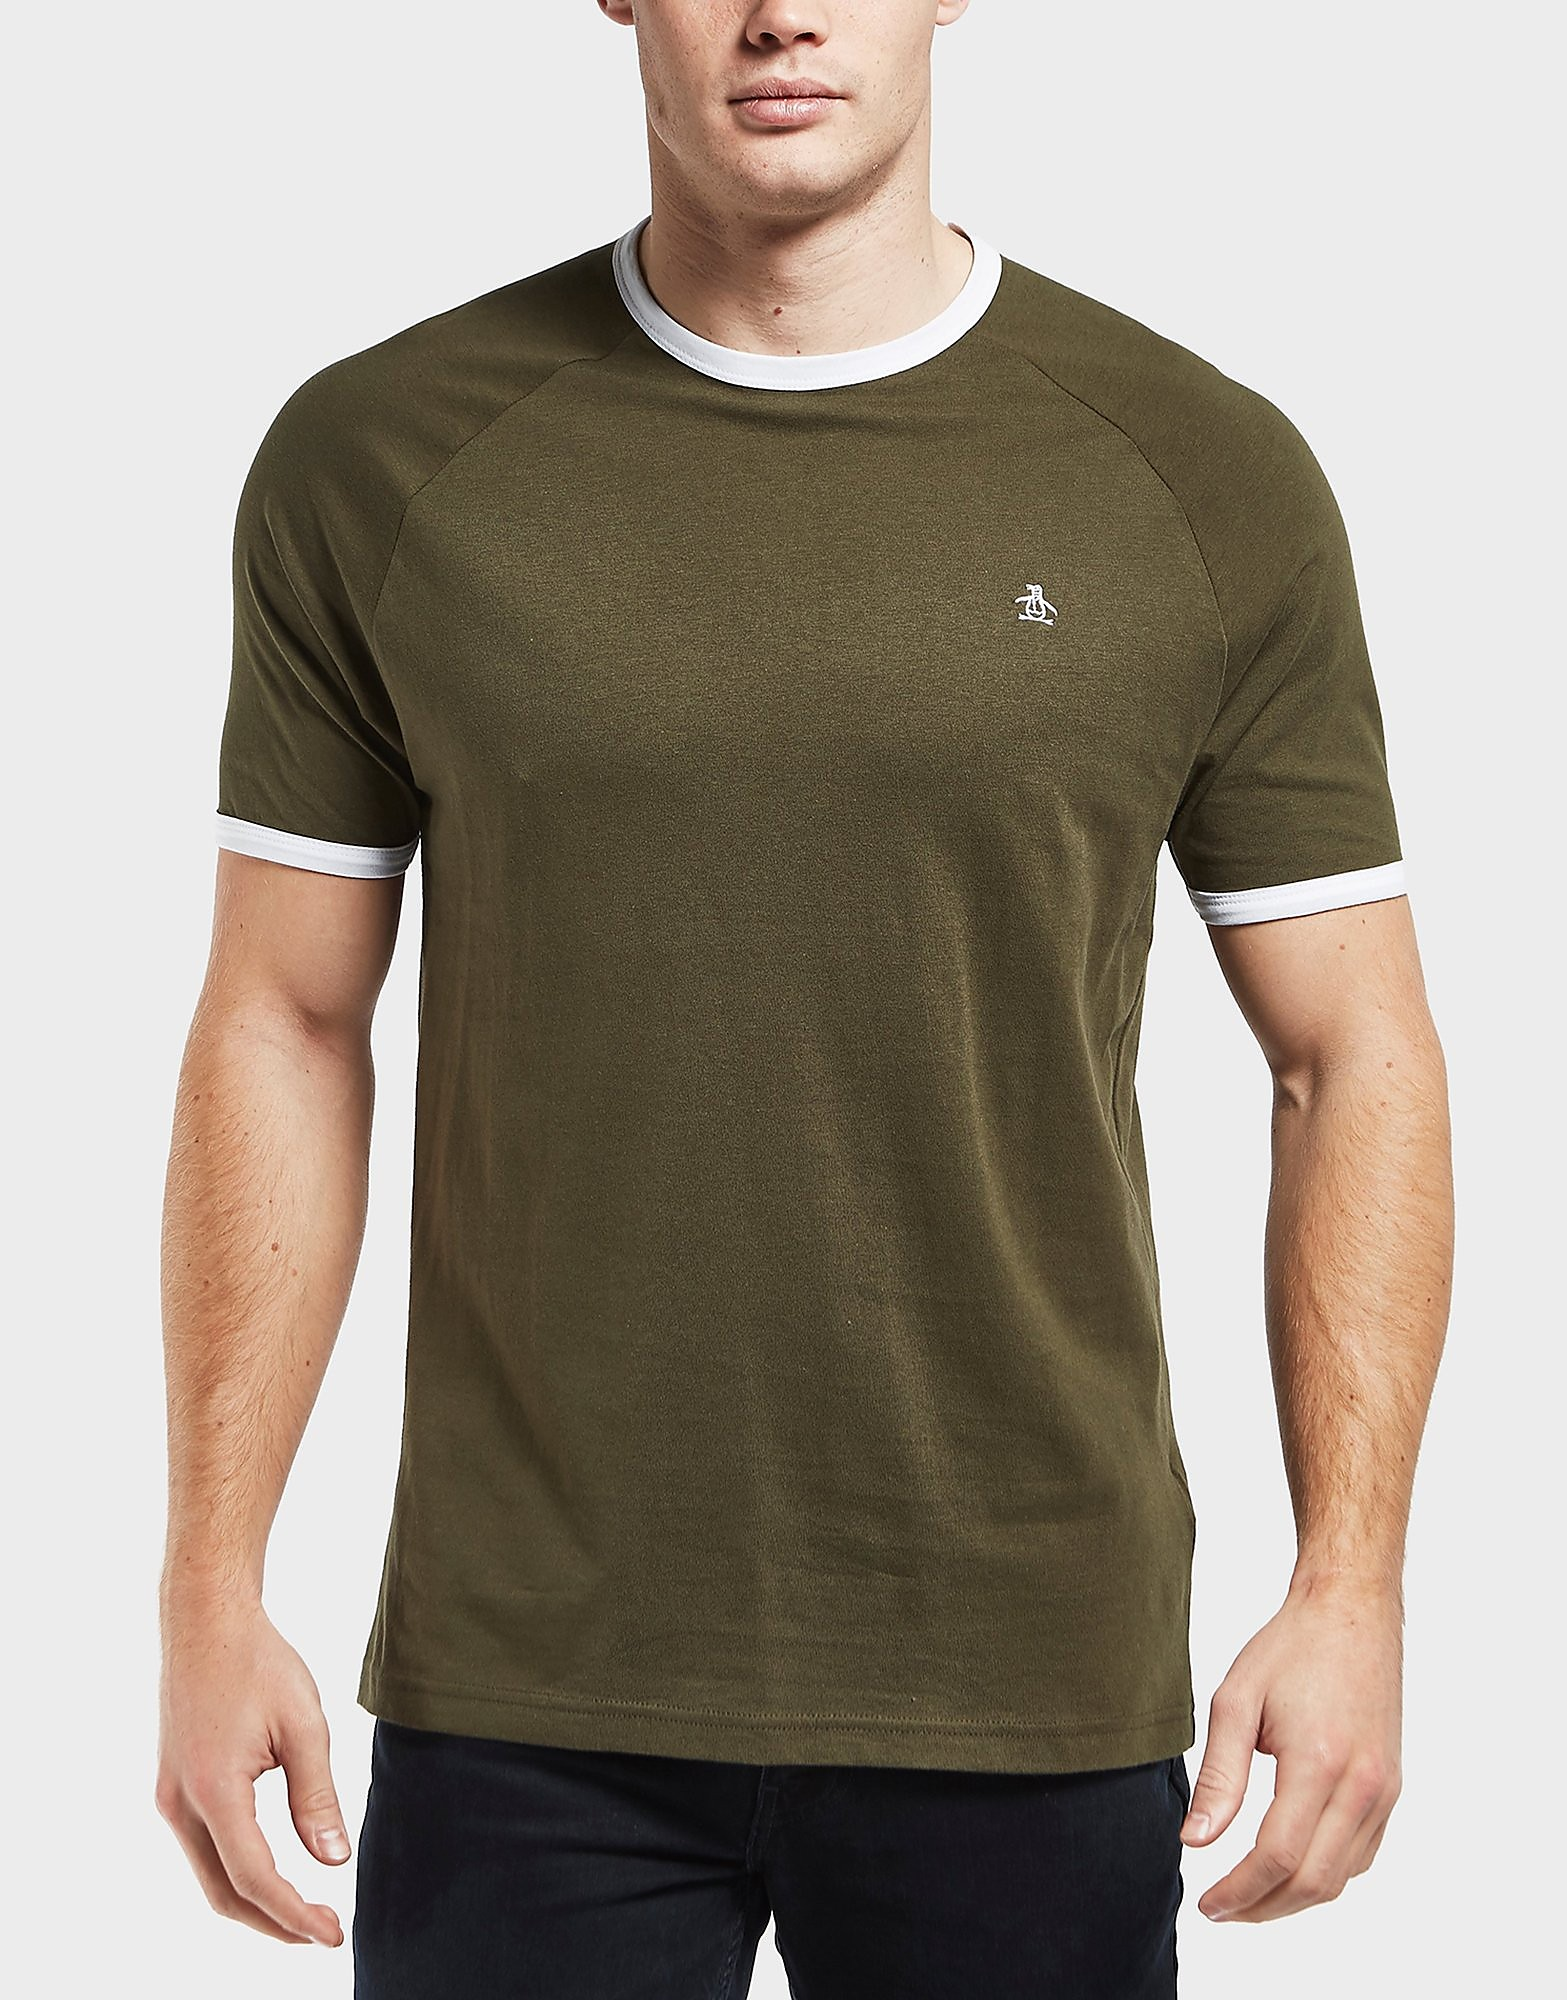 Original Penguin Ringer Short Sleeve T-Shirt - Exclusive